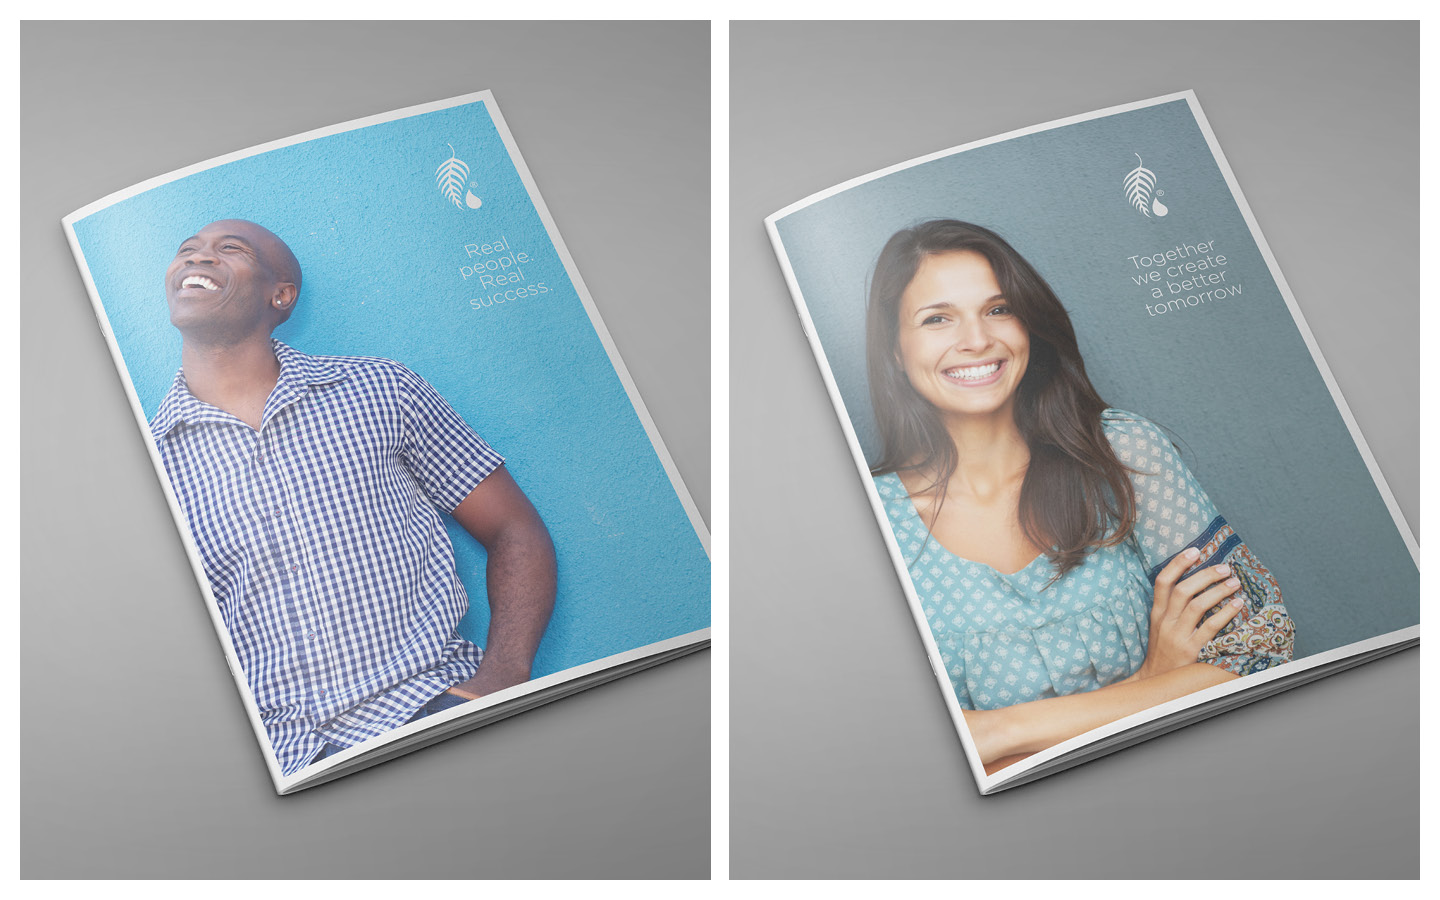 Concepts for New Customer Welcome Books